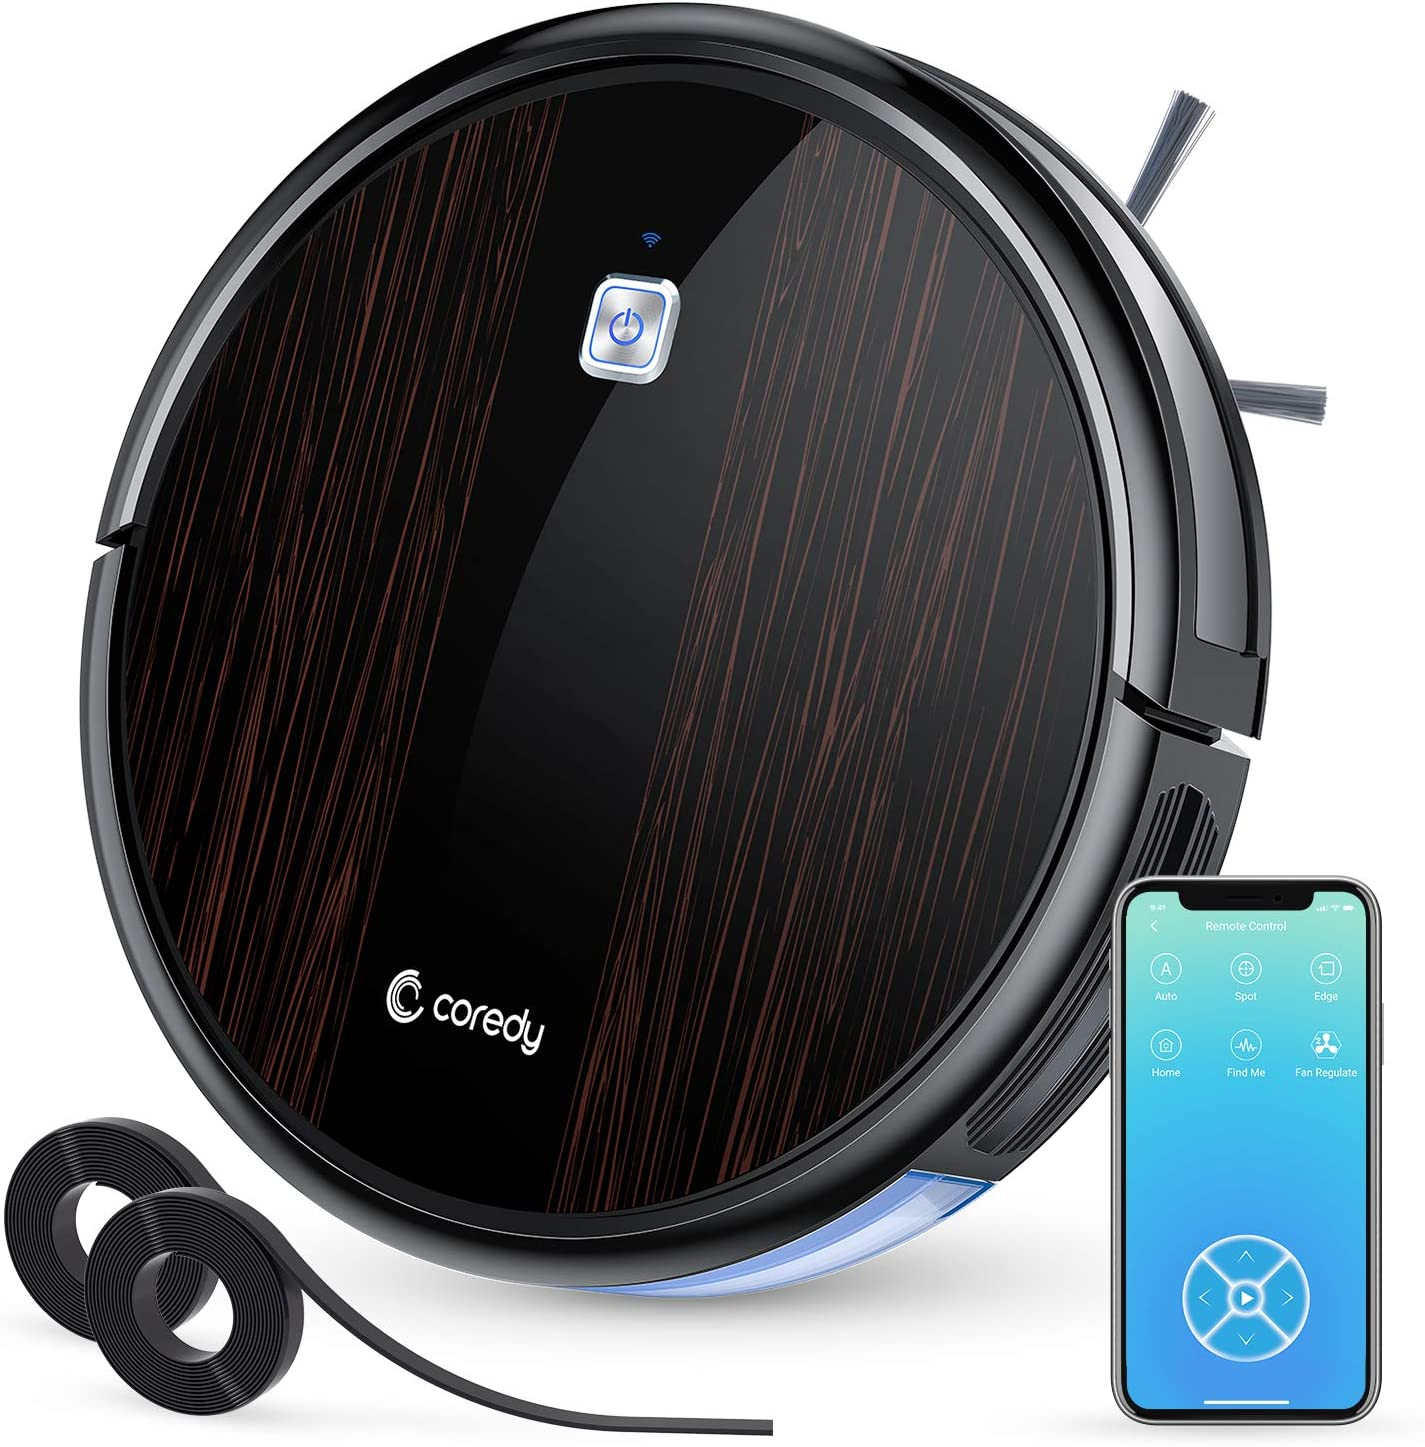 Coredy Robot Vacuum Cleaner, Wi-Fi Connected, 1700Pa Max Suction, Virtual Boundary Supported, Super Quiet Robotic Vacuums, Cleans Hard Floor to Carpet